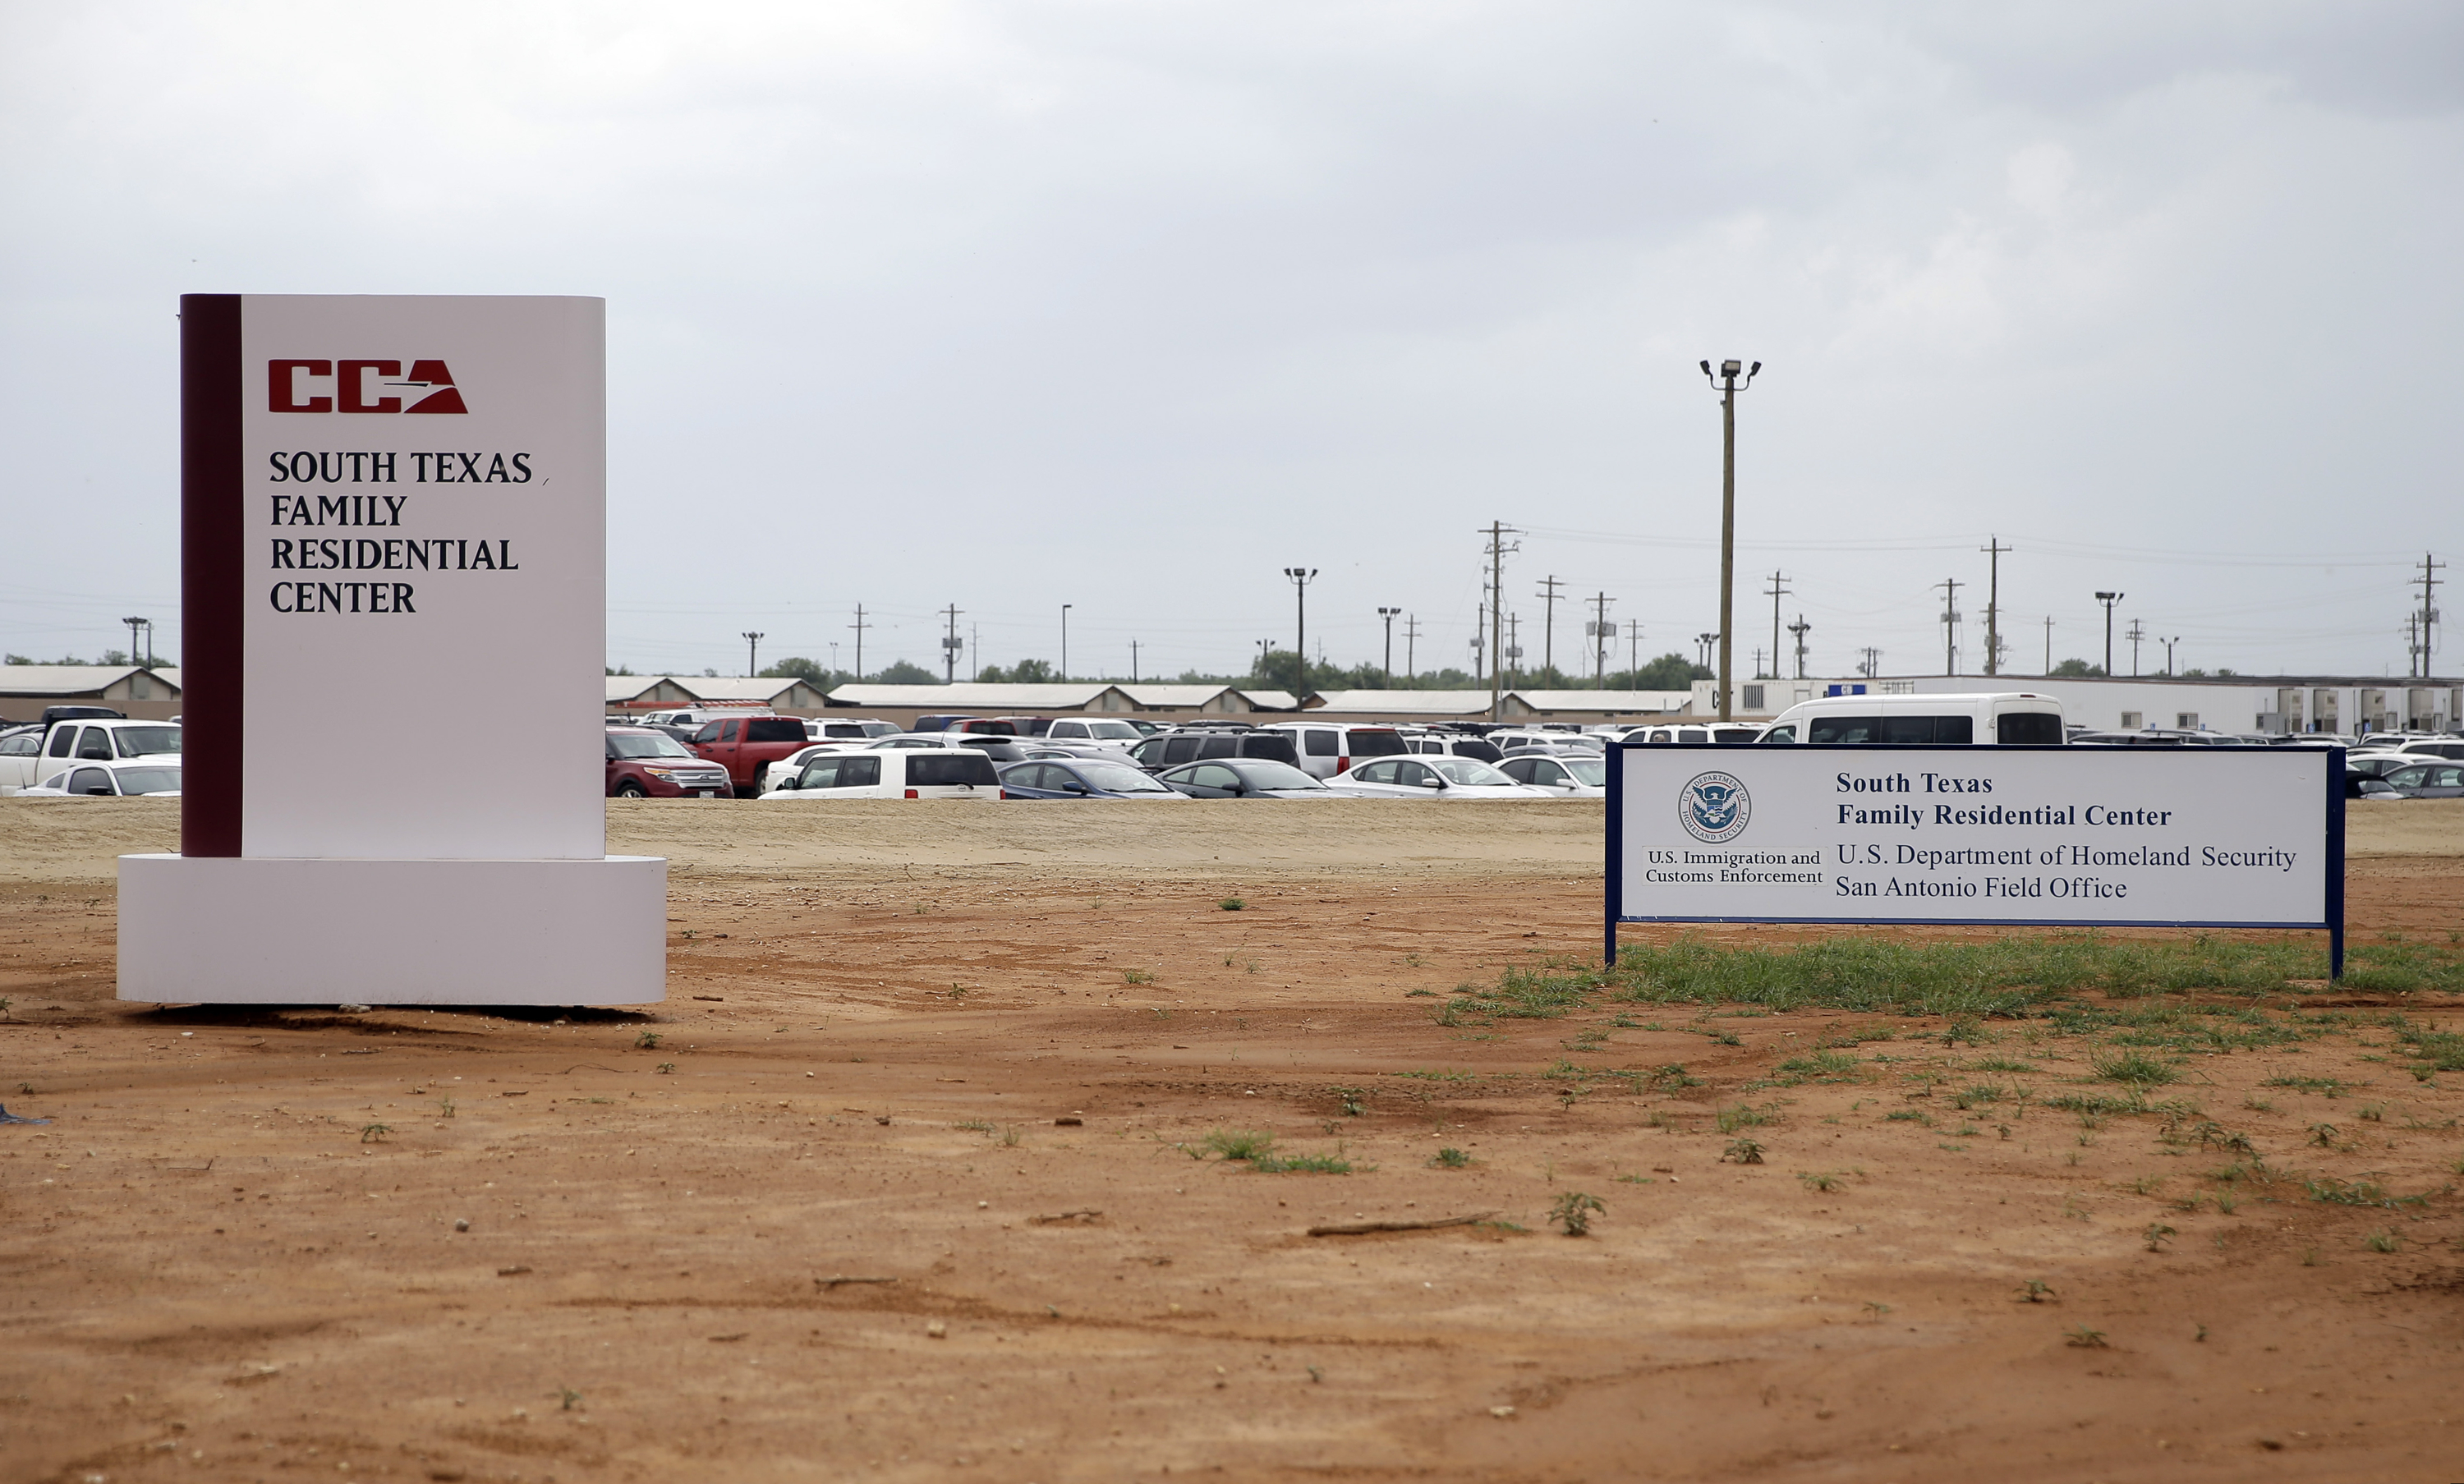 FILE - In this June 30, 2015, file photo, signs are seen at the entrance to the South Texas Family Residential Center in Dilley, Texas.